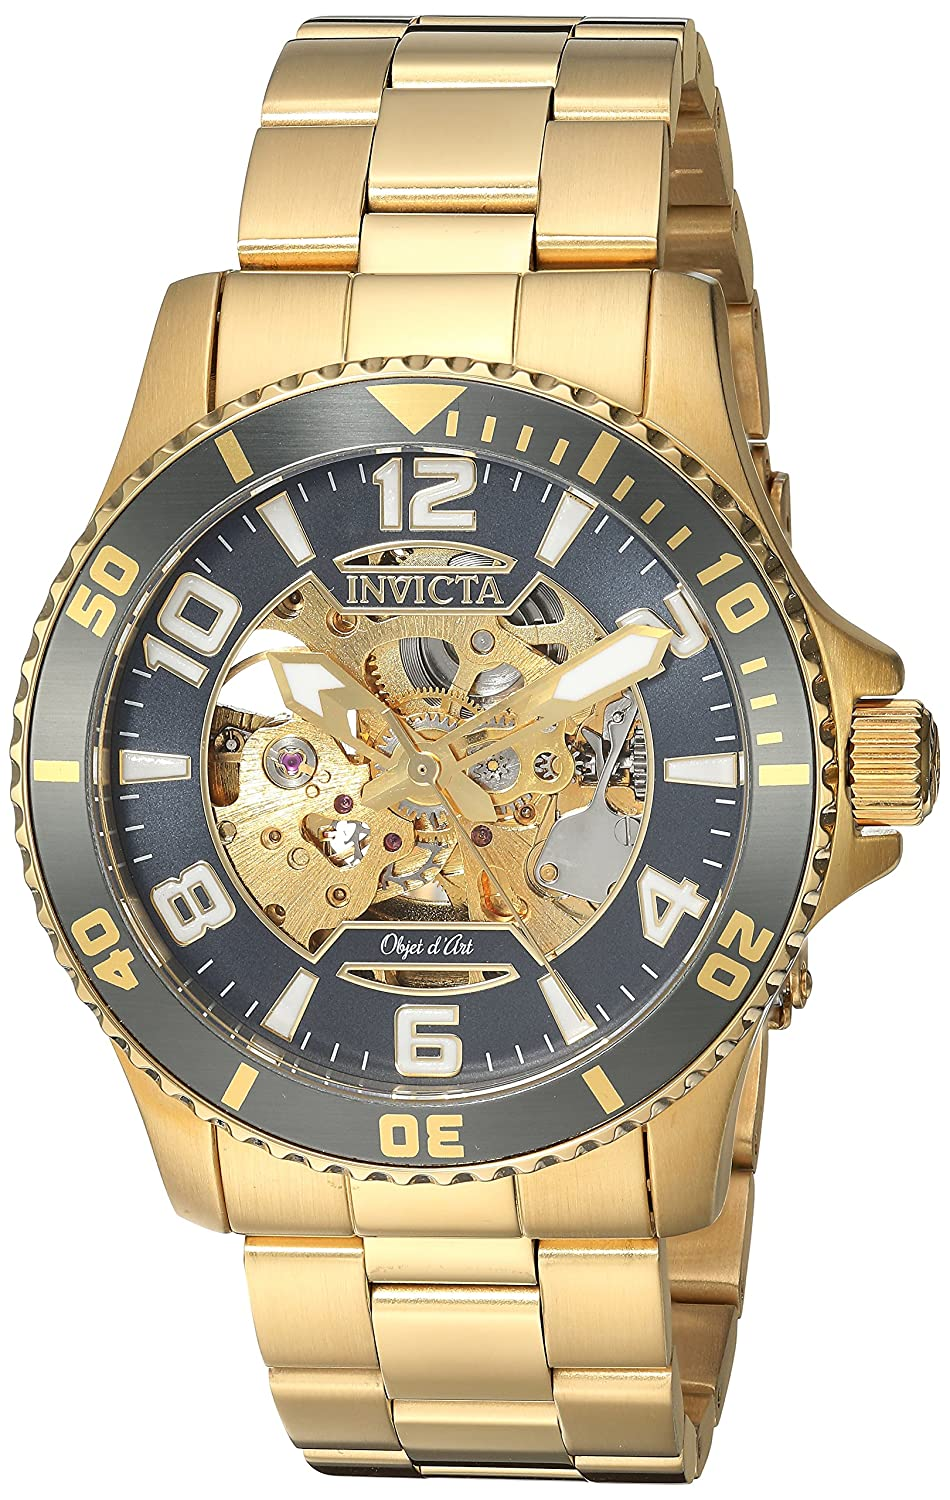 Amazon.com: Invicta Mens Objet D Art Automatic Stainless Steel Casual Watch, Color:Gold-Toned (Model: 22604): Invicta: Watches